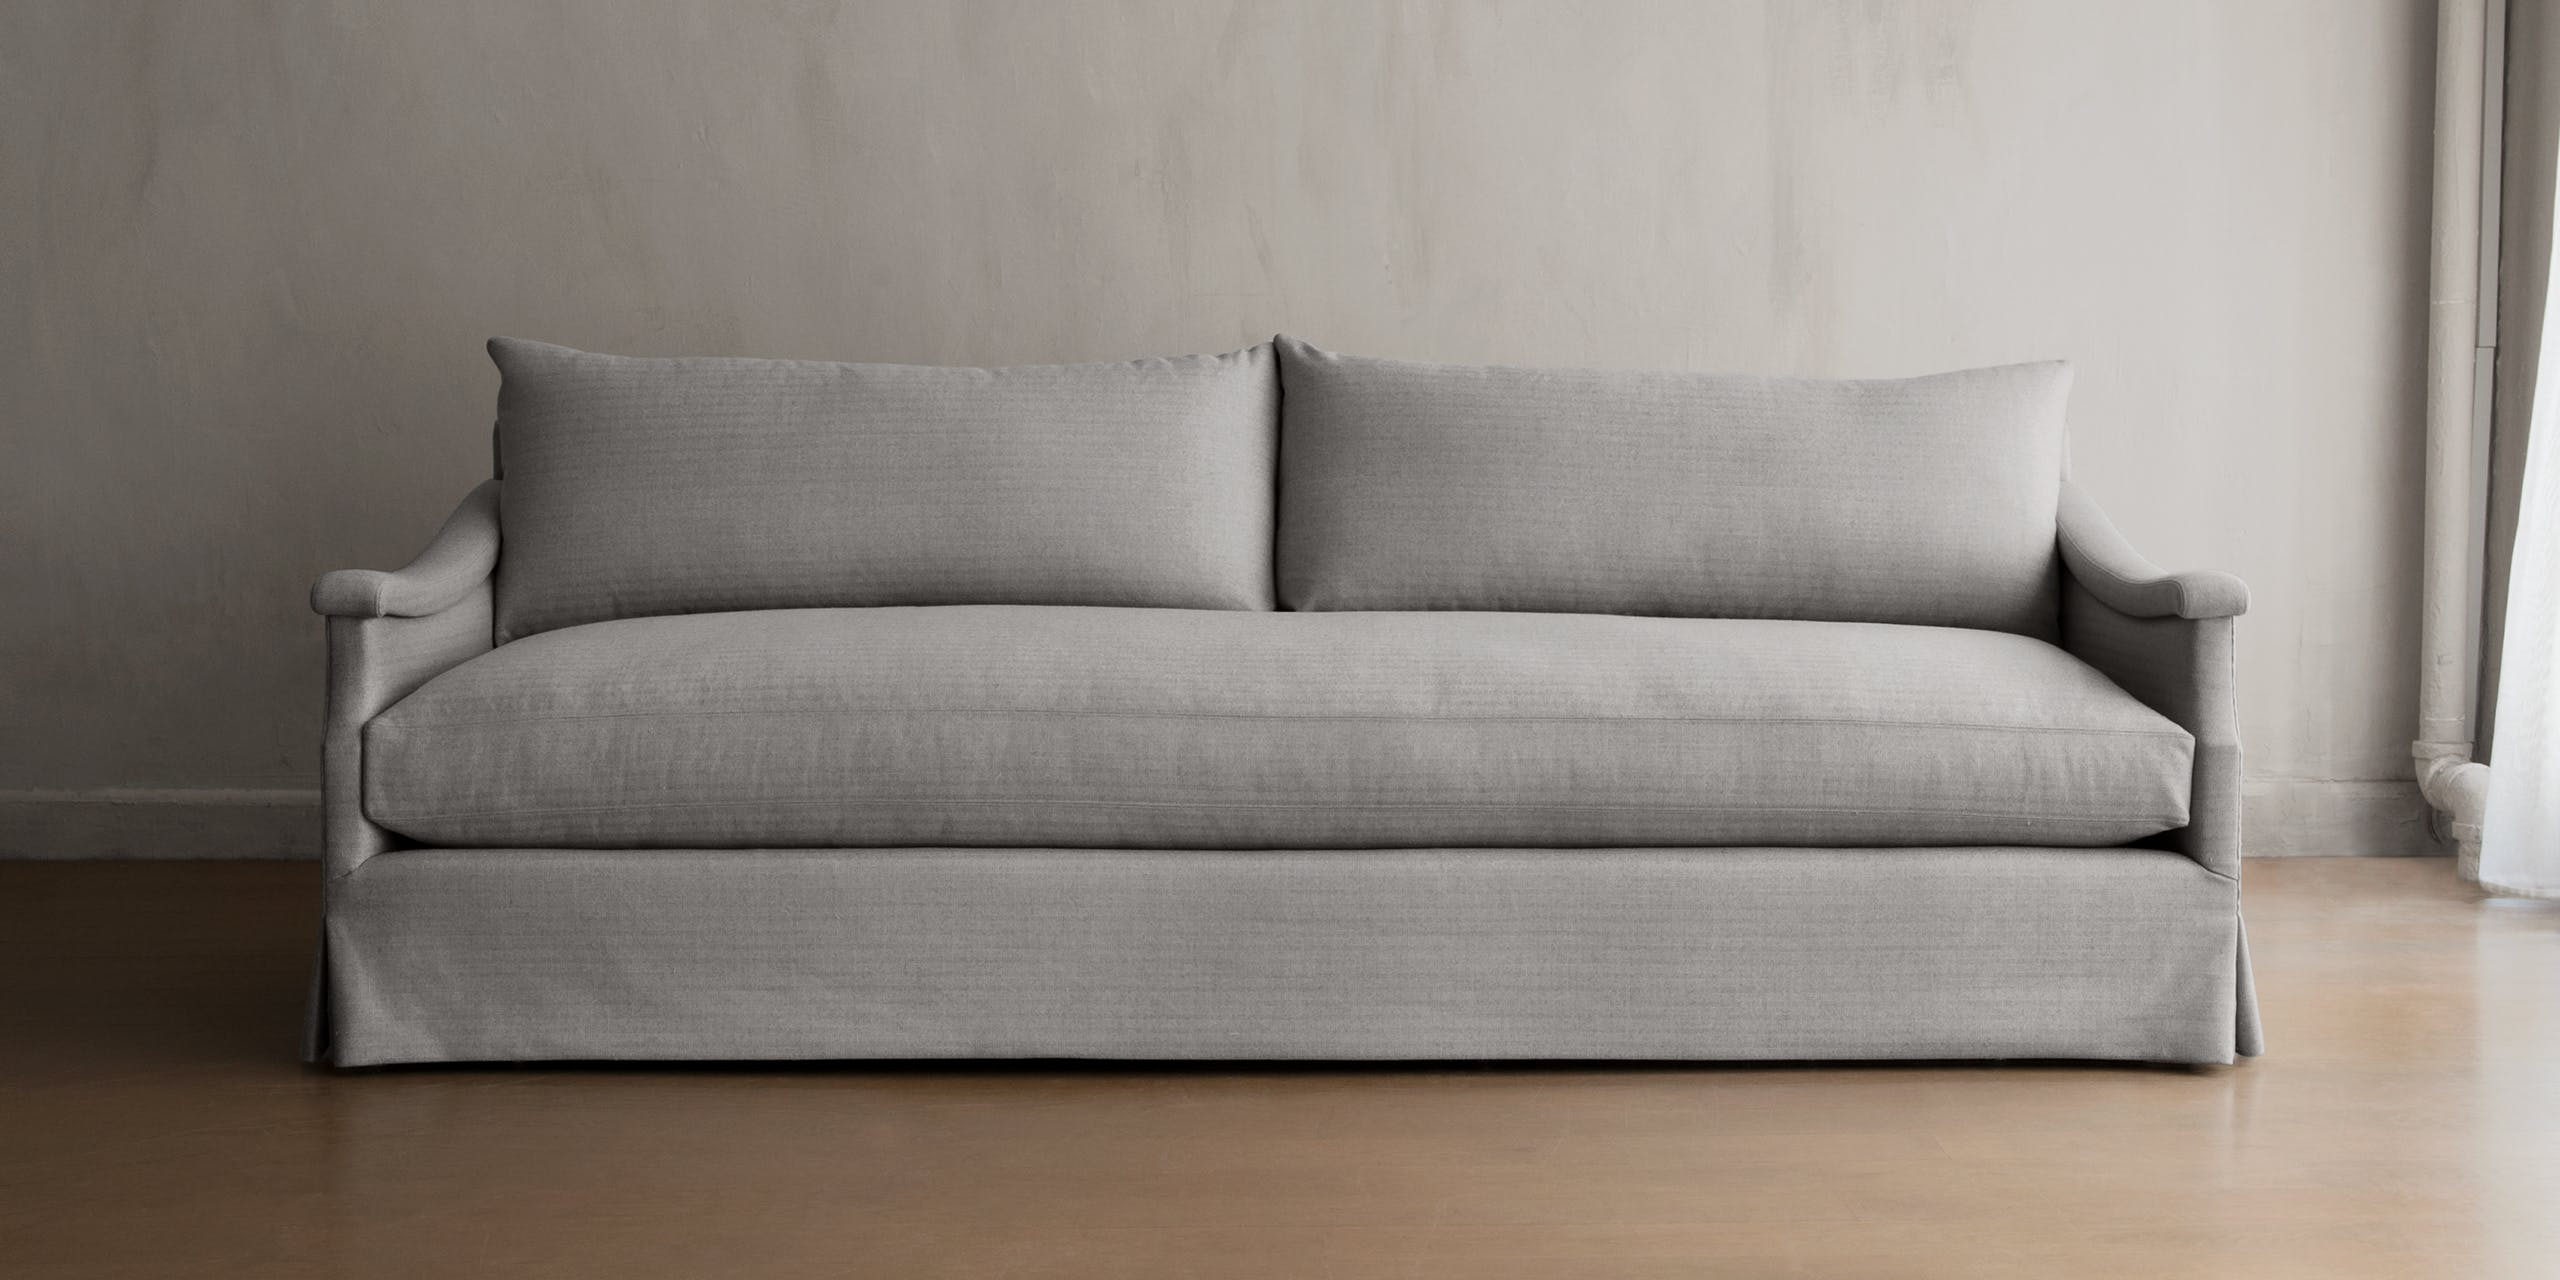 Vallone sofa main.jpg?ixlib=rails 2.1